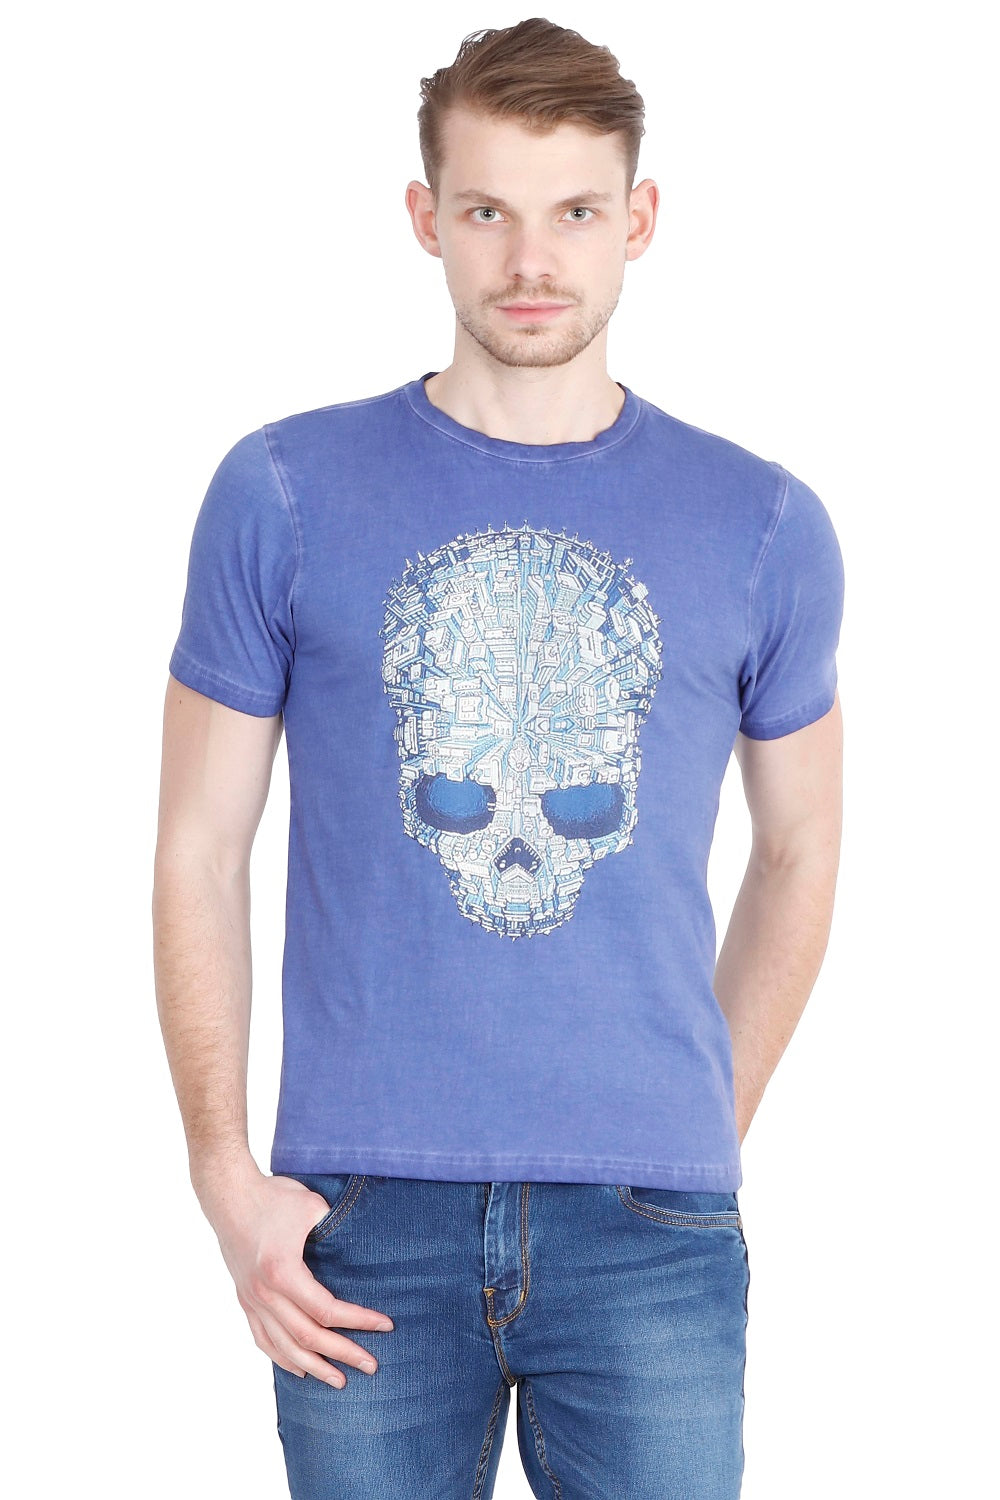 Hunt and Howe Men's Printed Round Neck T-Shirt